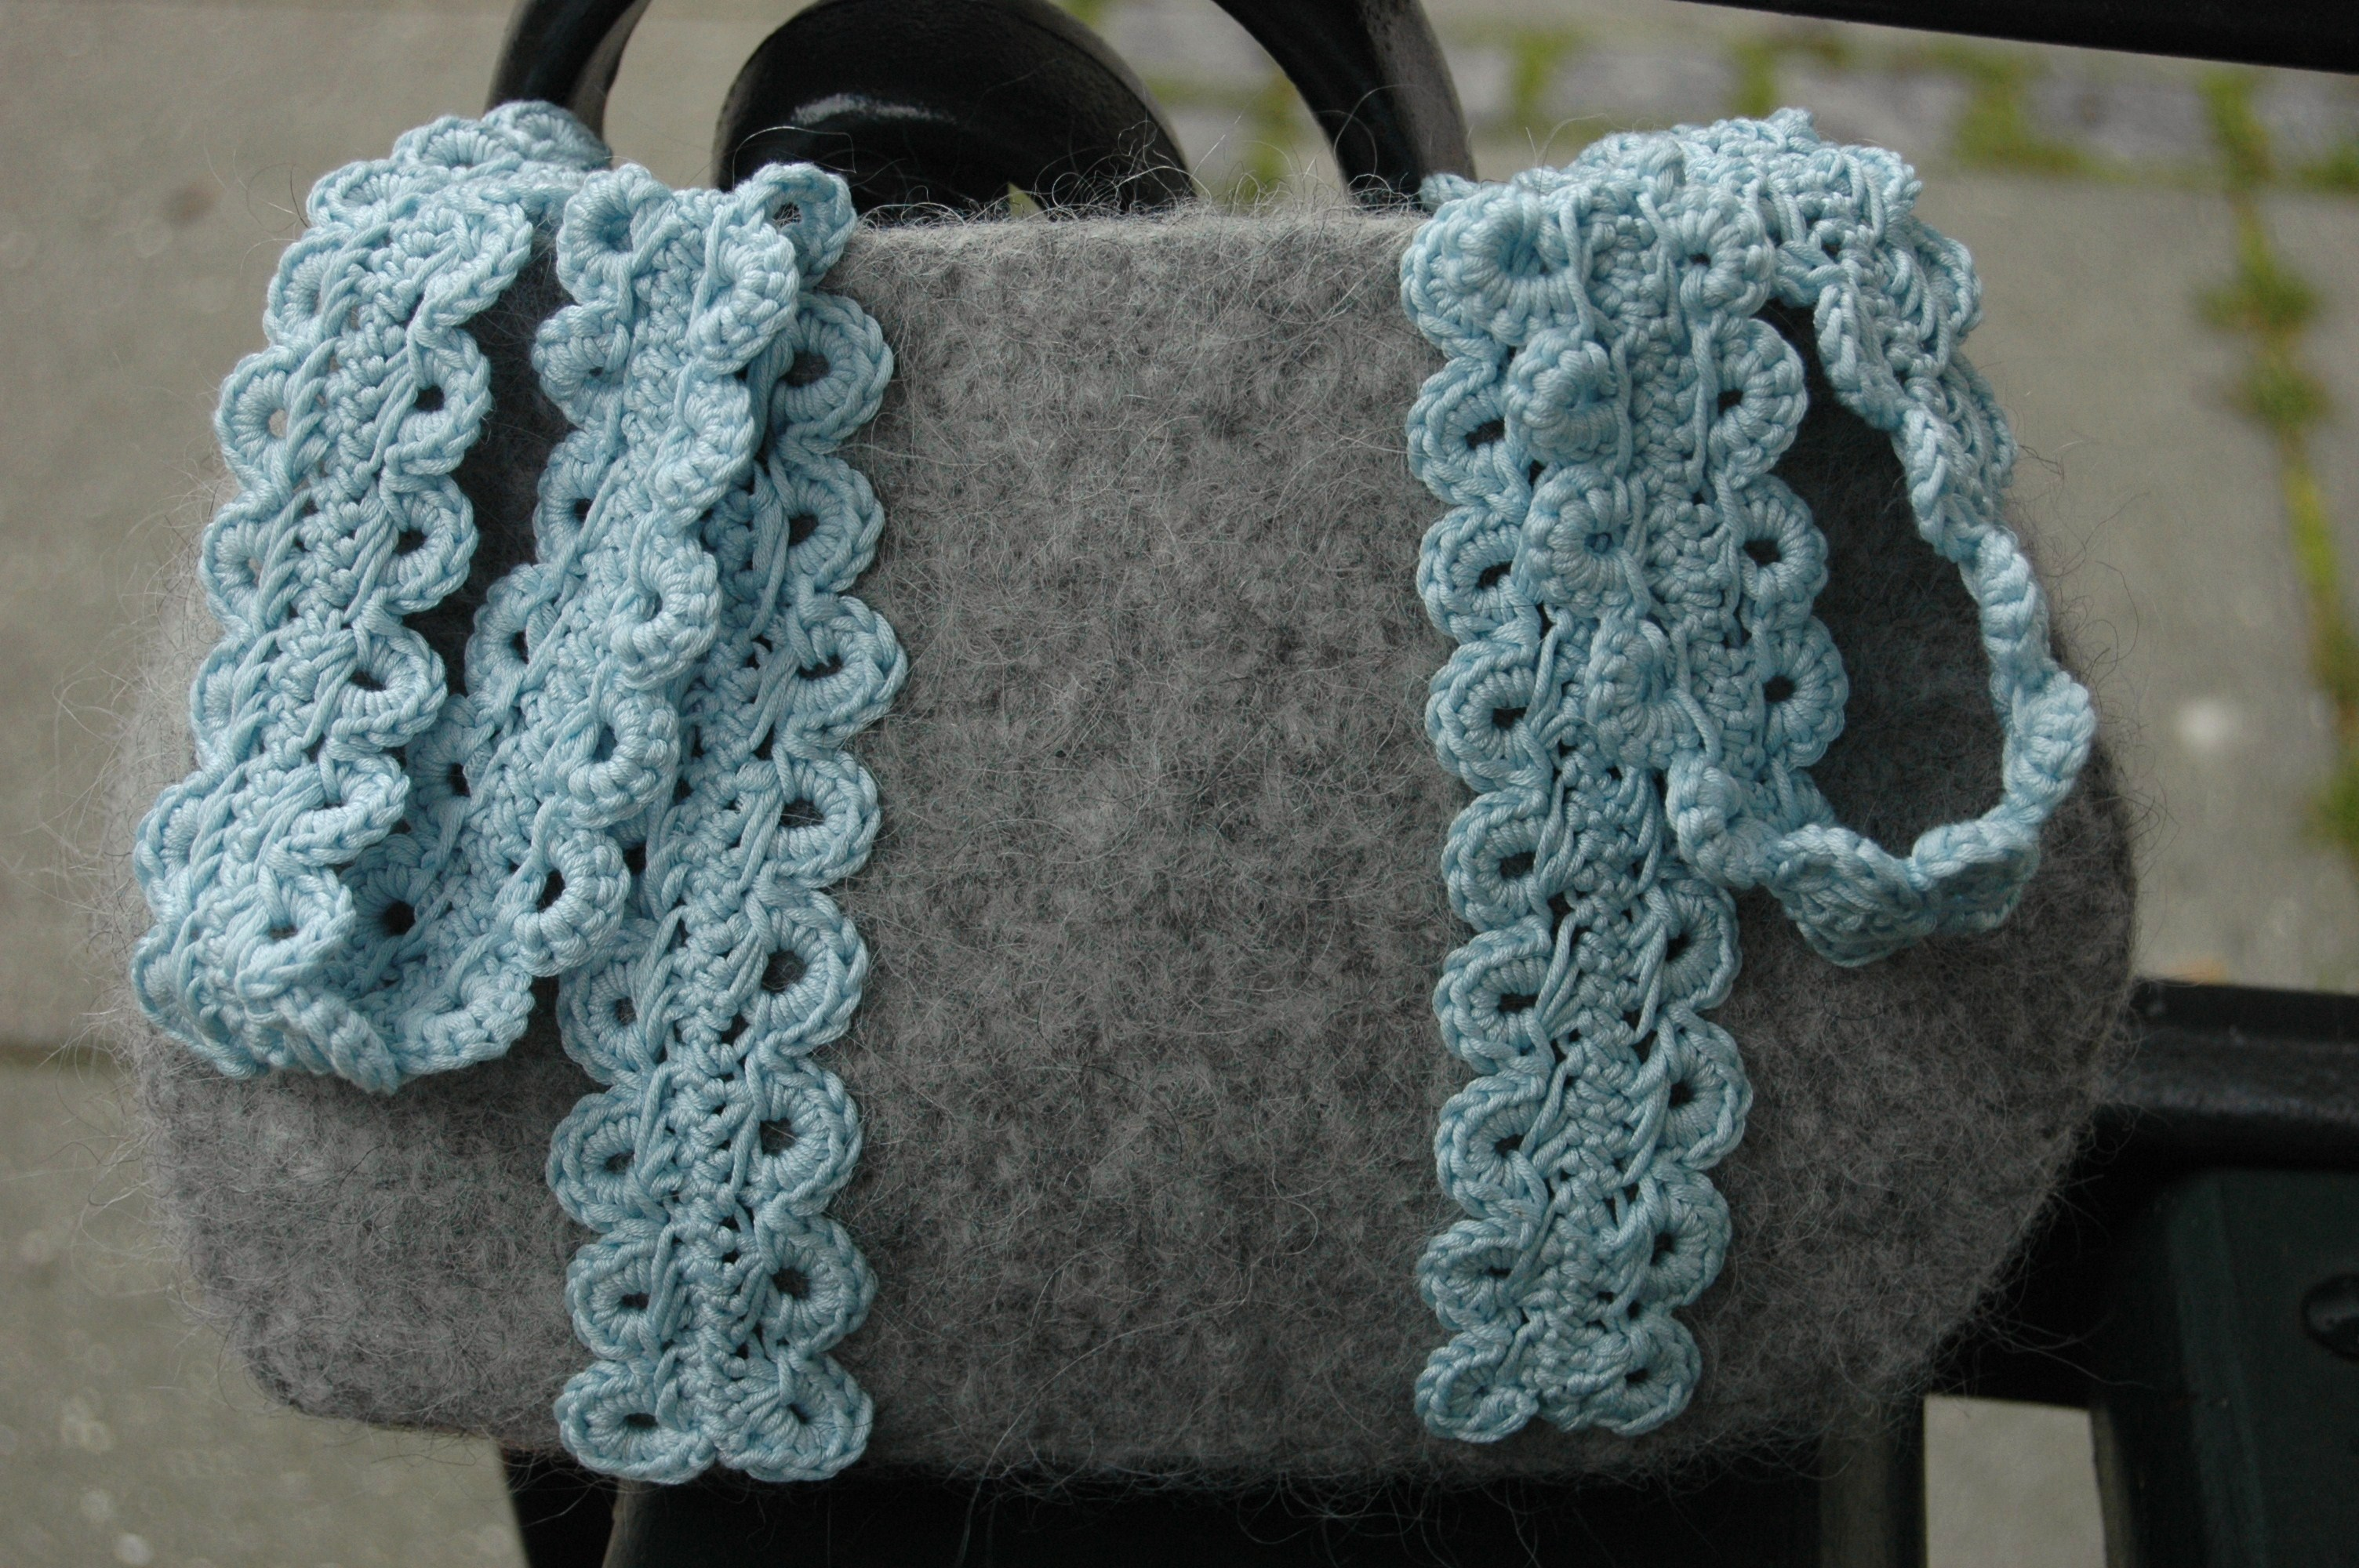 Crochet Designer Purse Patterns : Crochet Pattern Central - Free Bags, Totes and Purses - HD Wallpapers